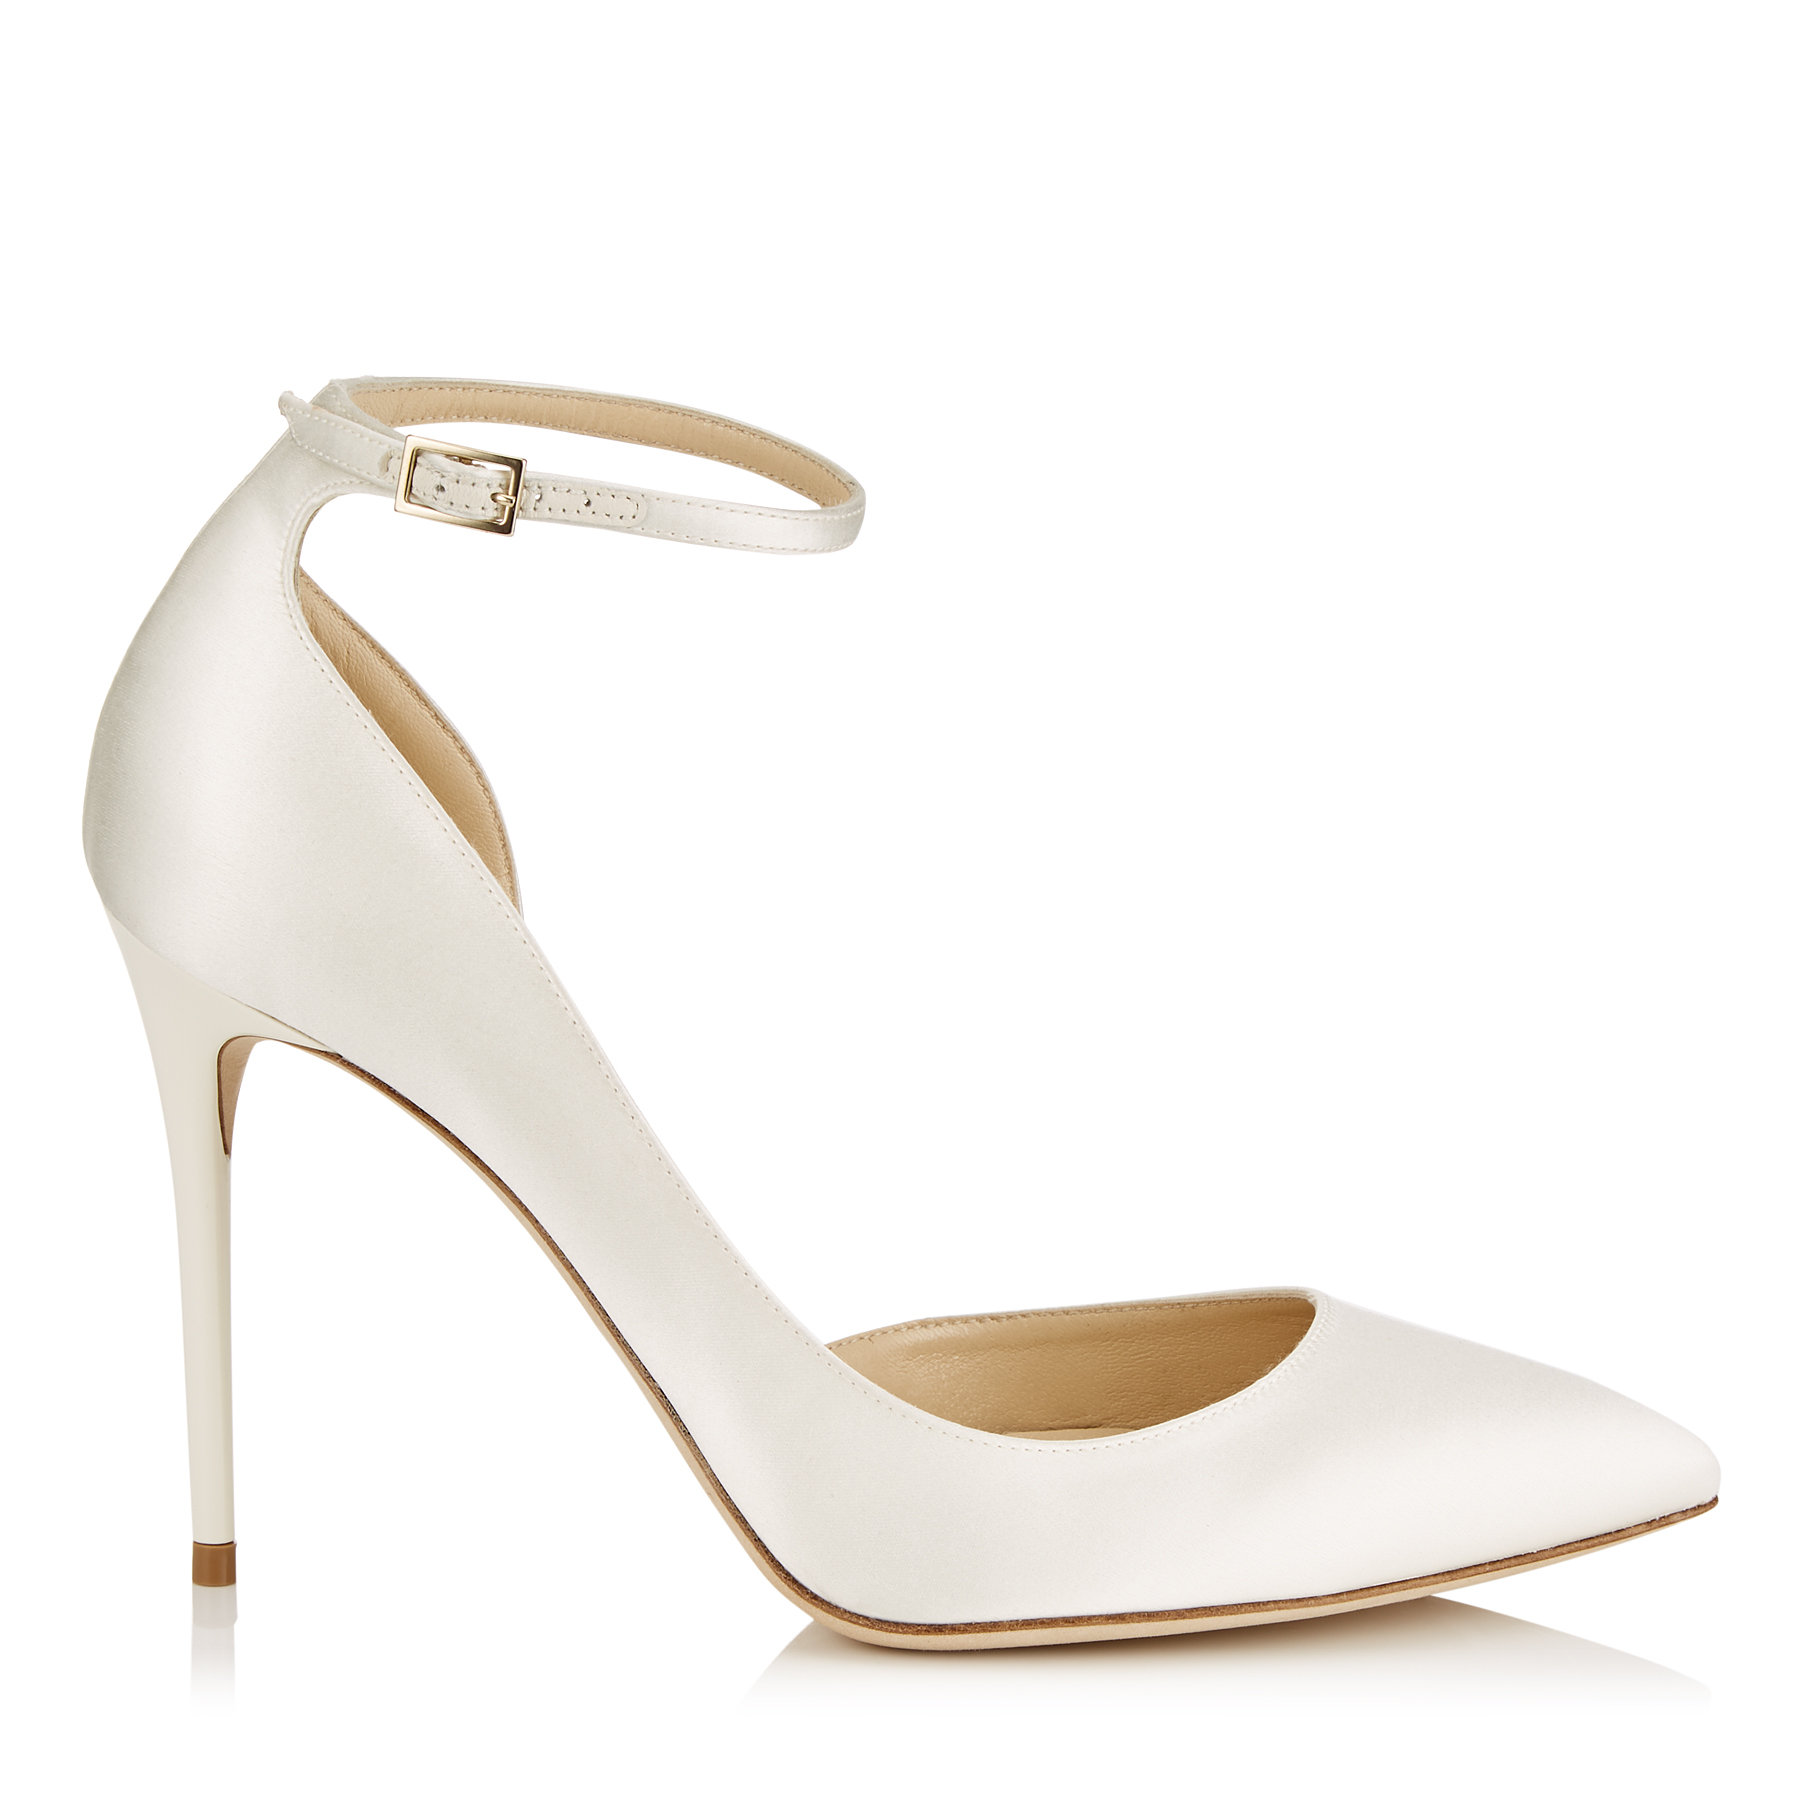 Photo of LUCY 100 Ivory Satin Pointy Toe Pumps by Jimmy Choo womens shoes - buy Jimmy Choo footwear online